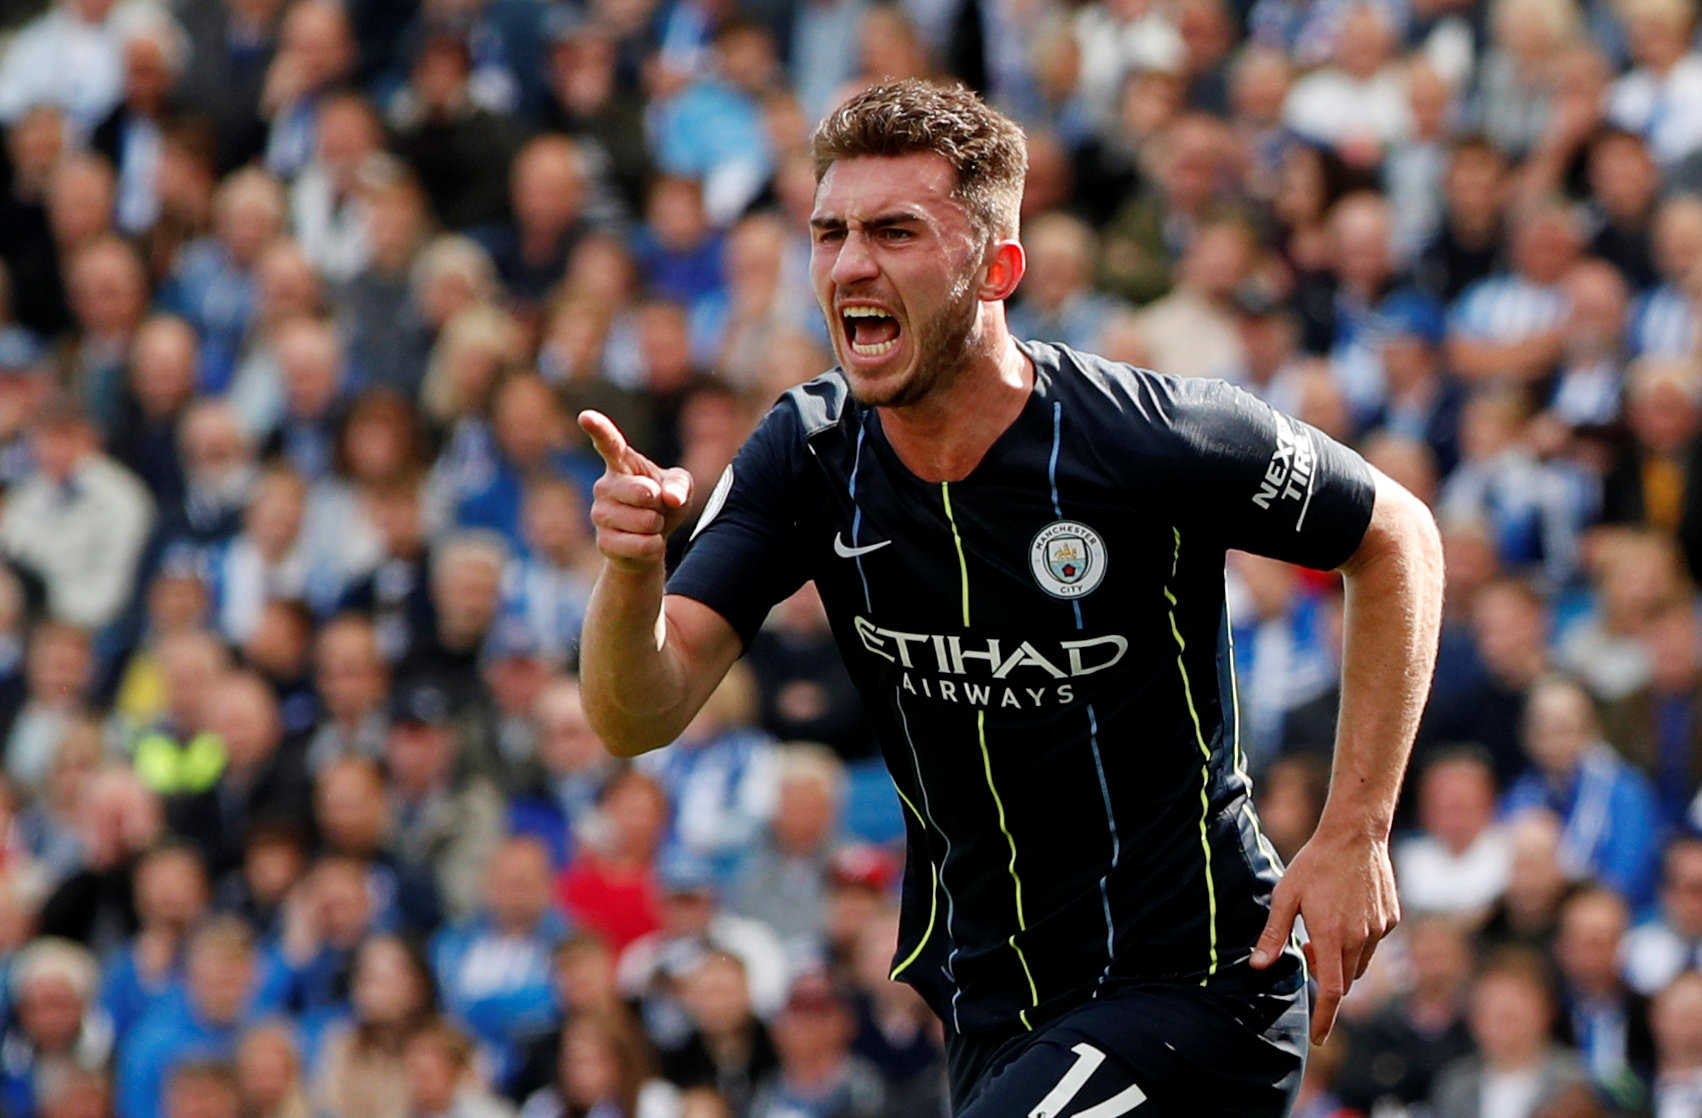 Top Five tallest Manchester City players - Laporte